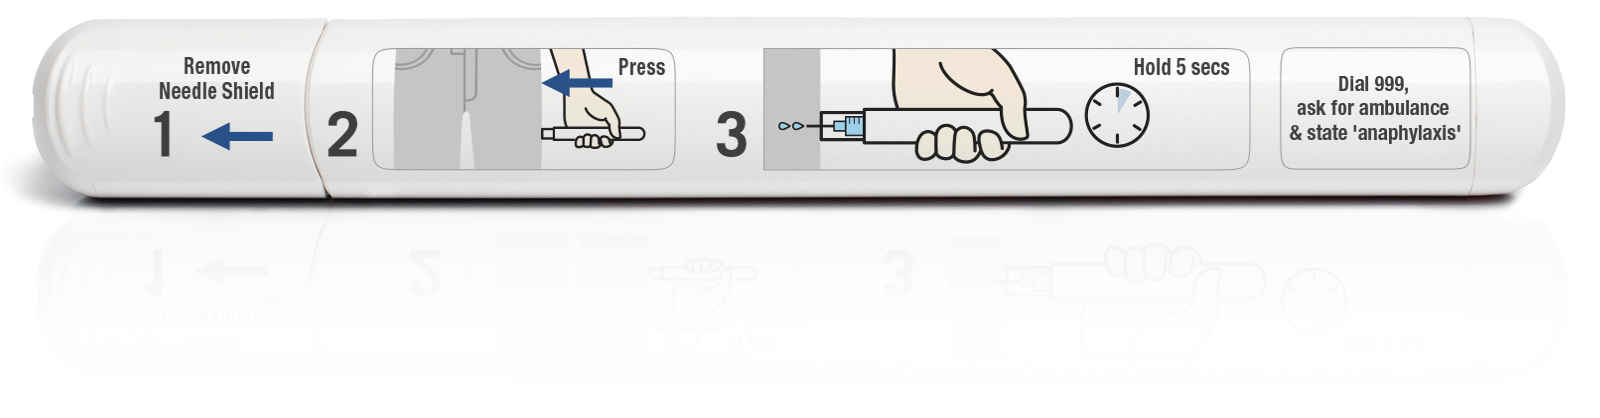 Emerade Adrenaline Auto Injector For Anaphylaxis